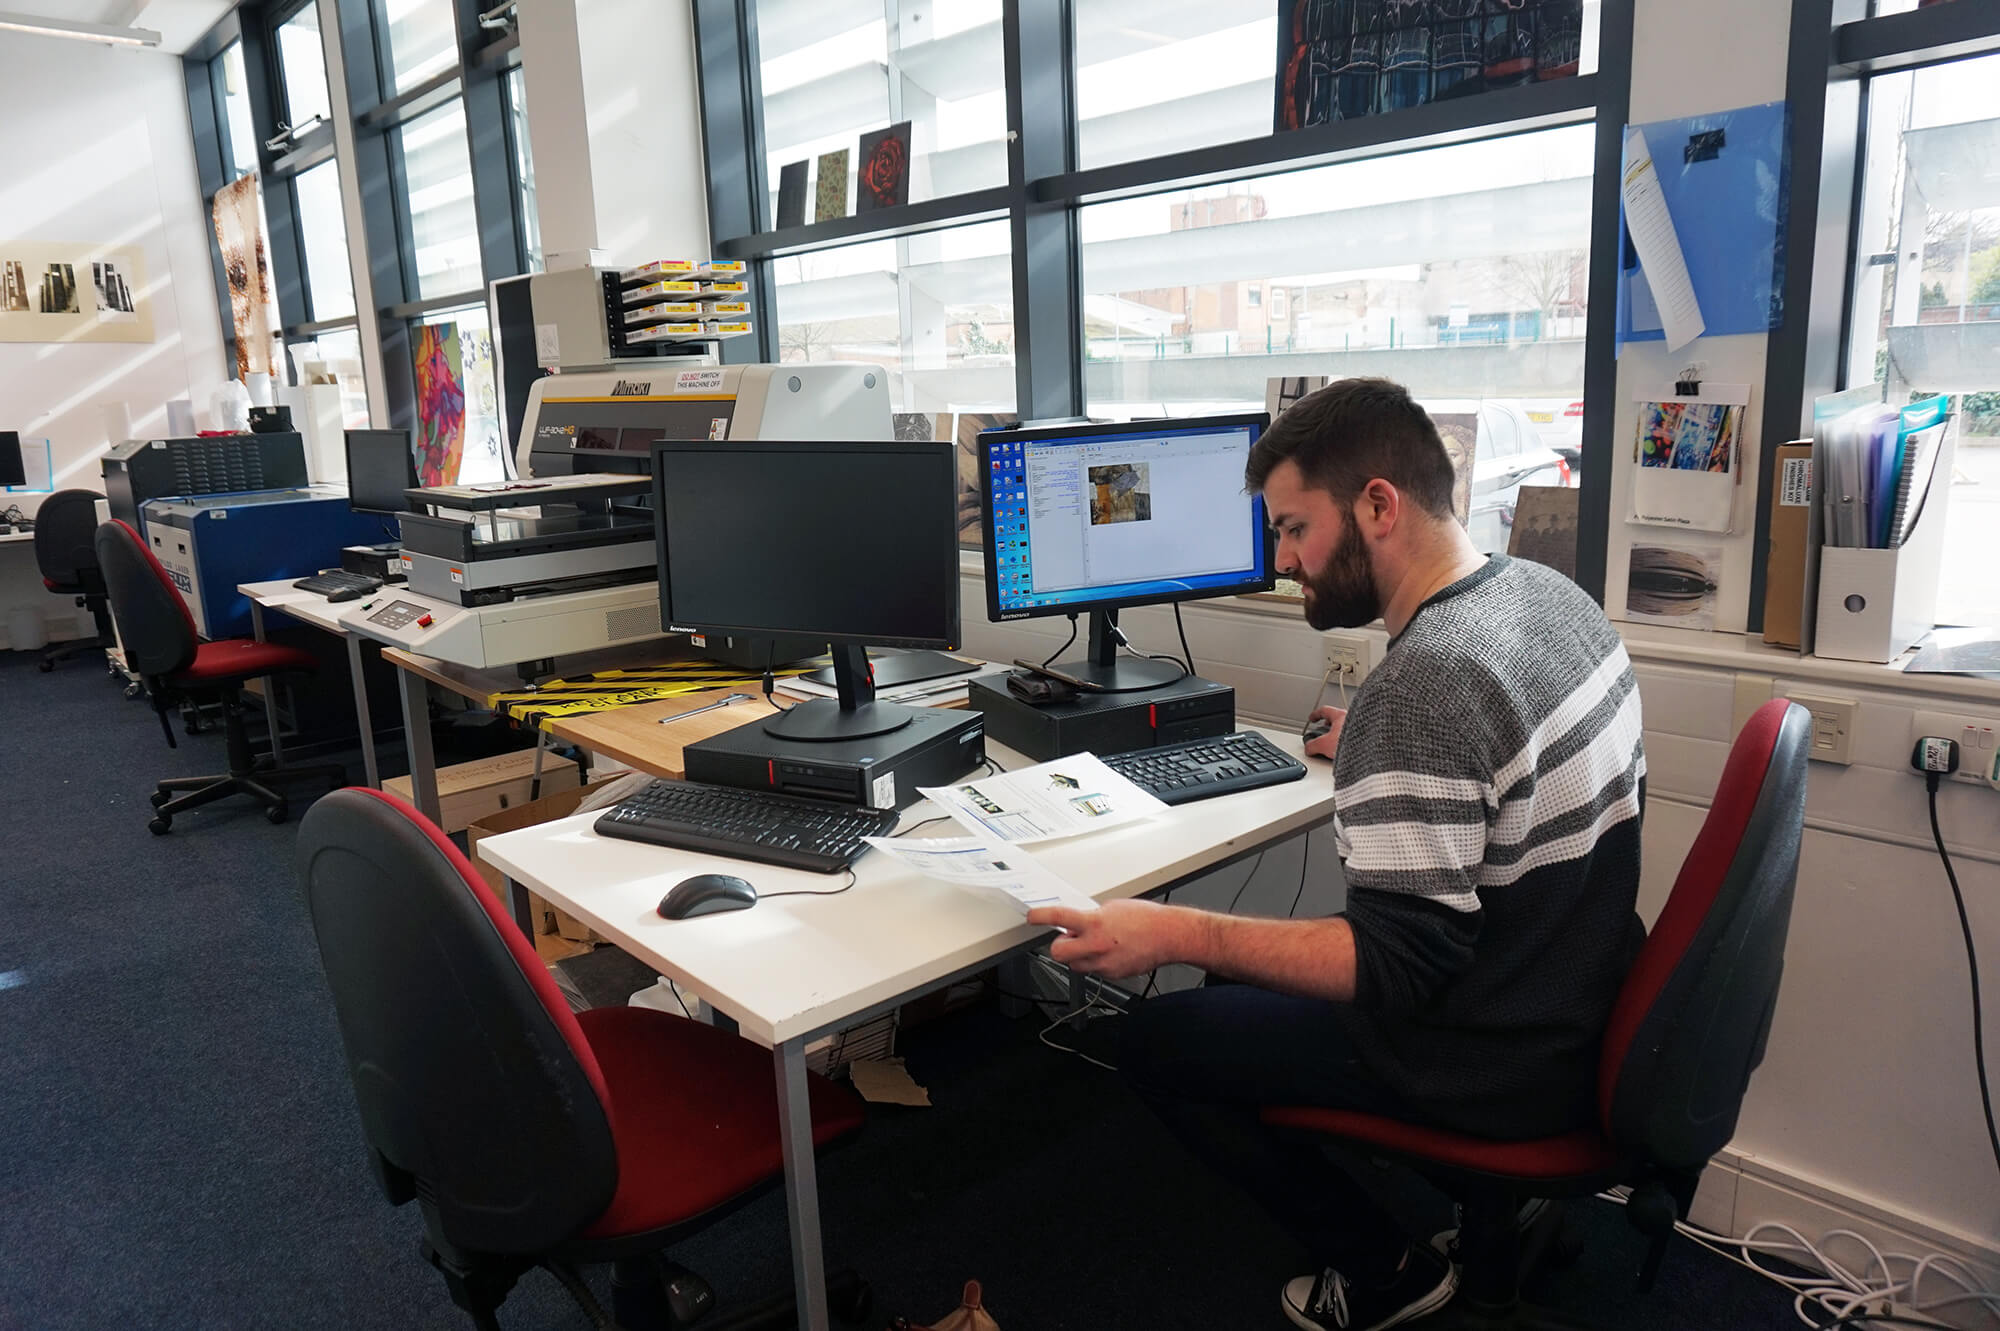 Working in the Digital Design Hub at Markeaton Street